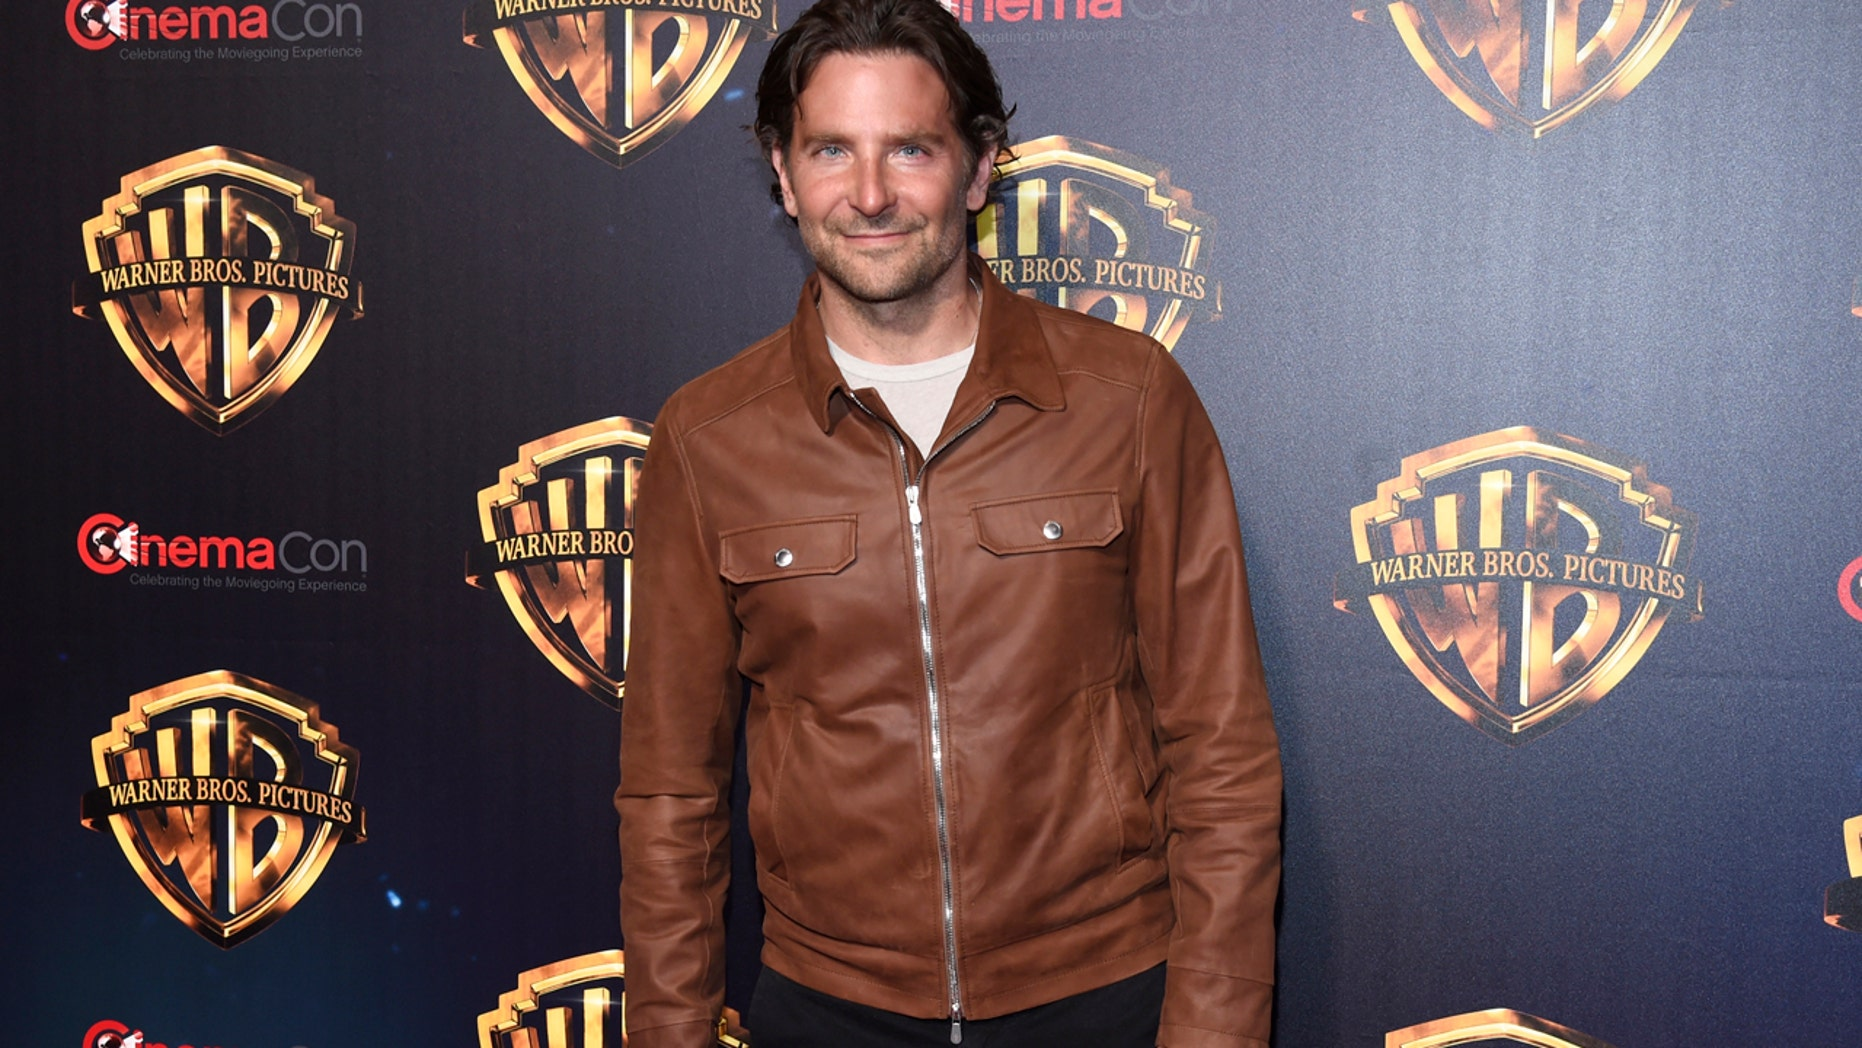 Bradley Cooper arrives at the Warner Bros. presentation at CinemaCon 2018, the official convention of the National Association of Theatre Owners, at Caesars Palace on Tuesday, April 24, 2018, in Las Vegas. (Photo by Chris Pizzello/Invision/AP)